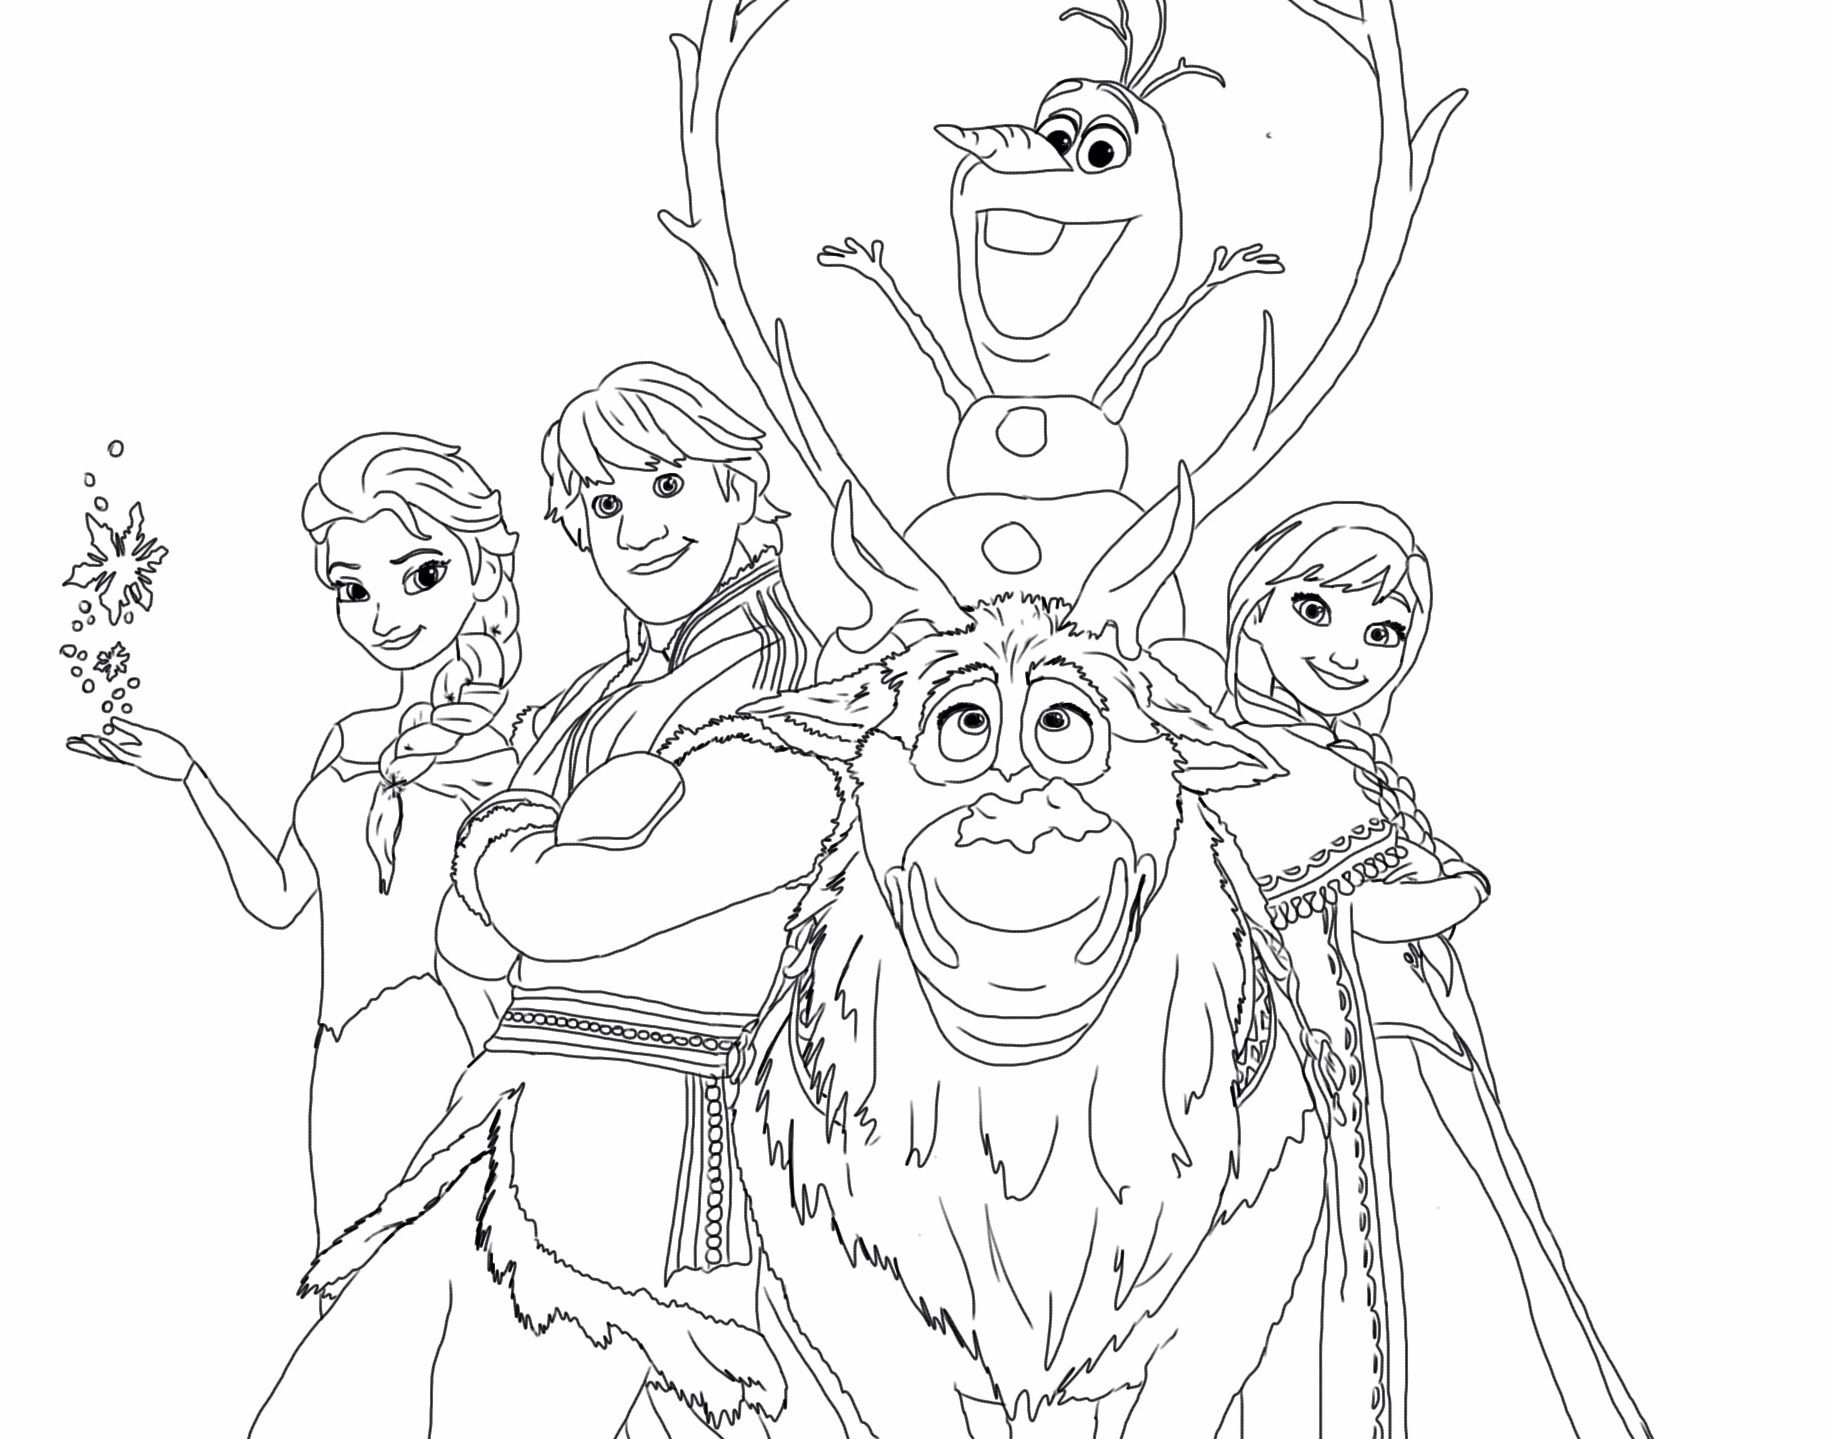 Frozen printable coloring book - Coloring Page Of Frozen Characters